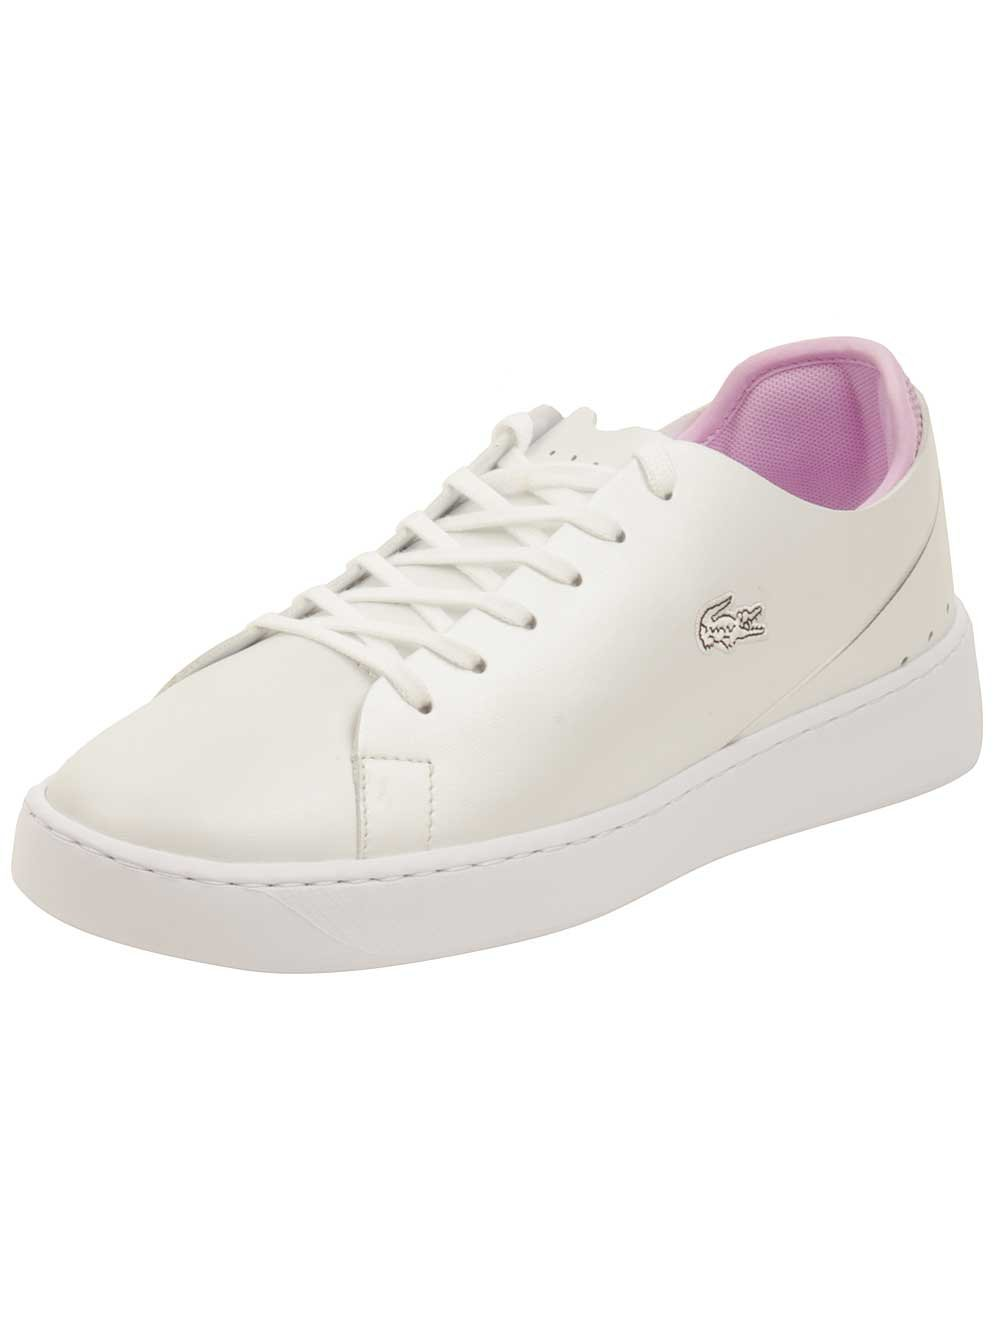 Lacoste Women's Eyyla Sneakers,White/Light Purp Leather,7.5 M US